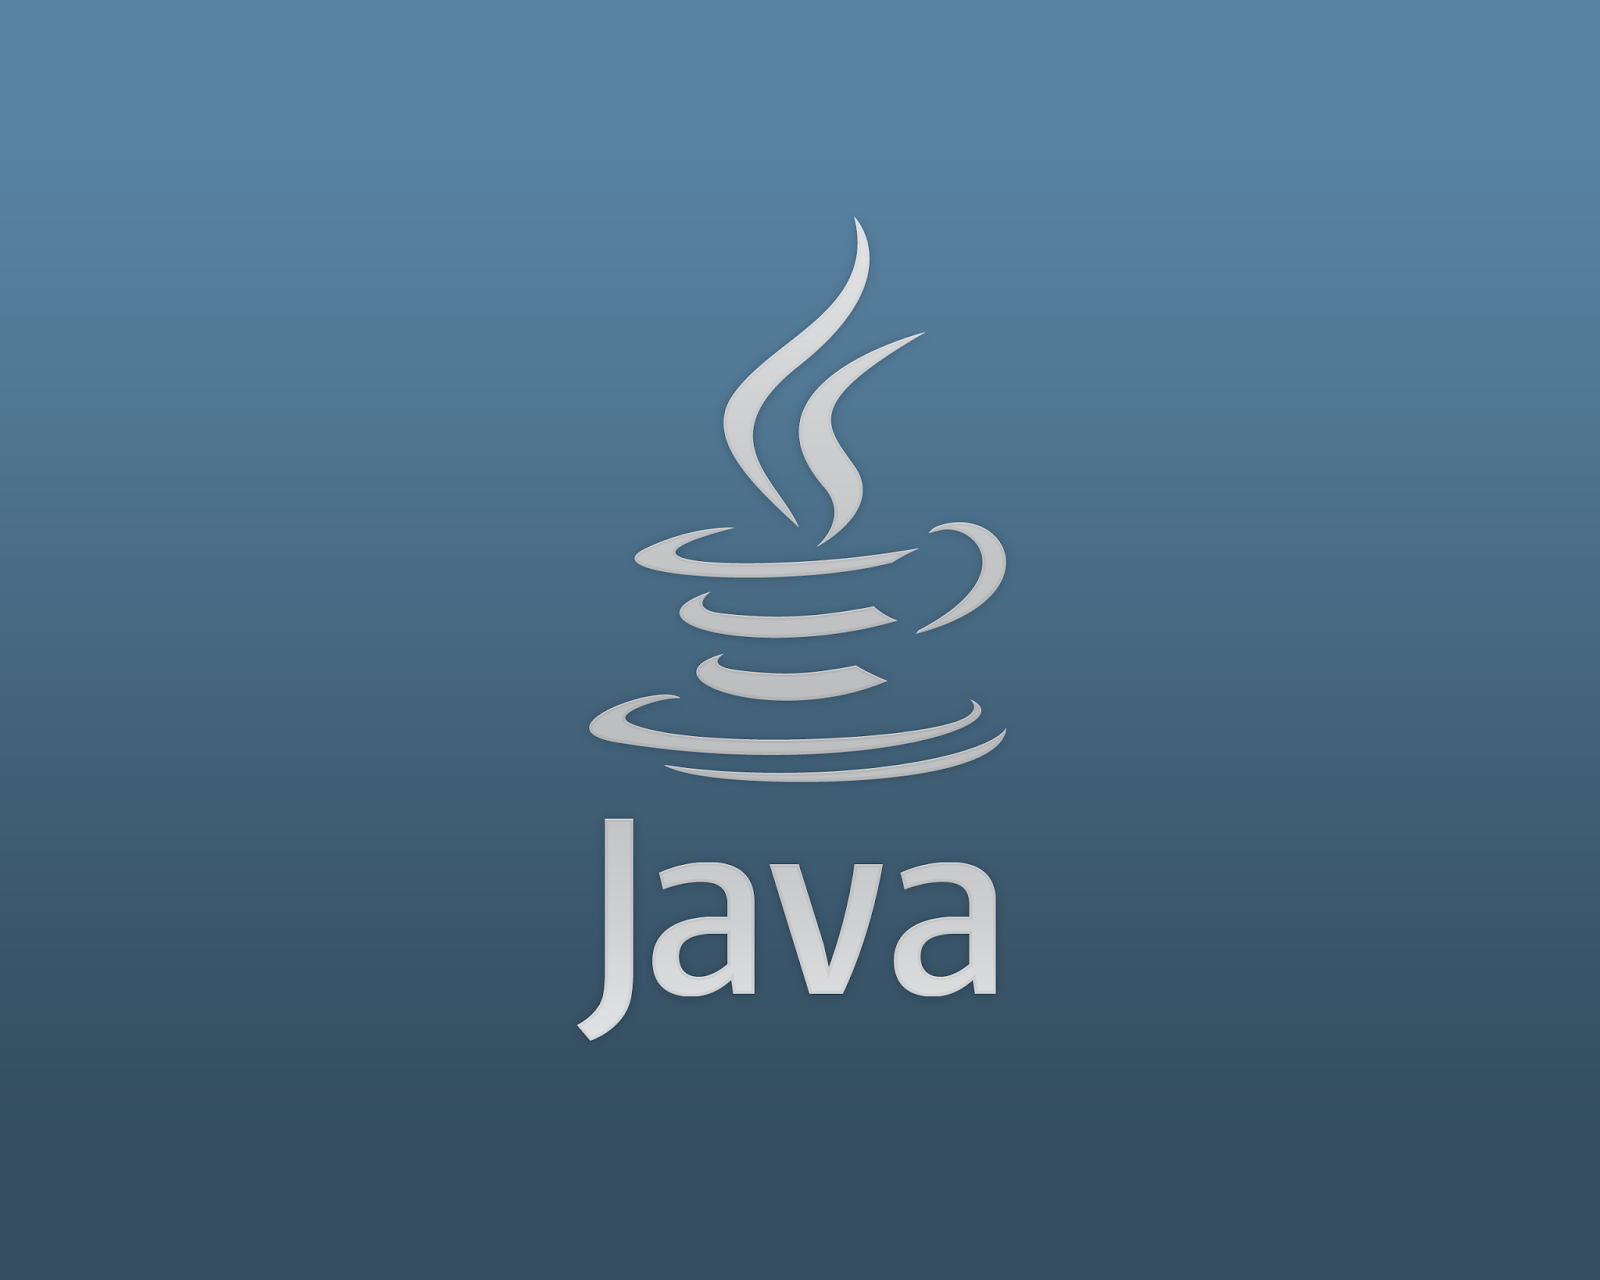 Java Wallpapers by Merilyn Sigala on B.SCB WP&BG Collection